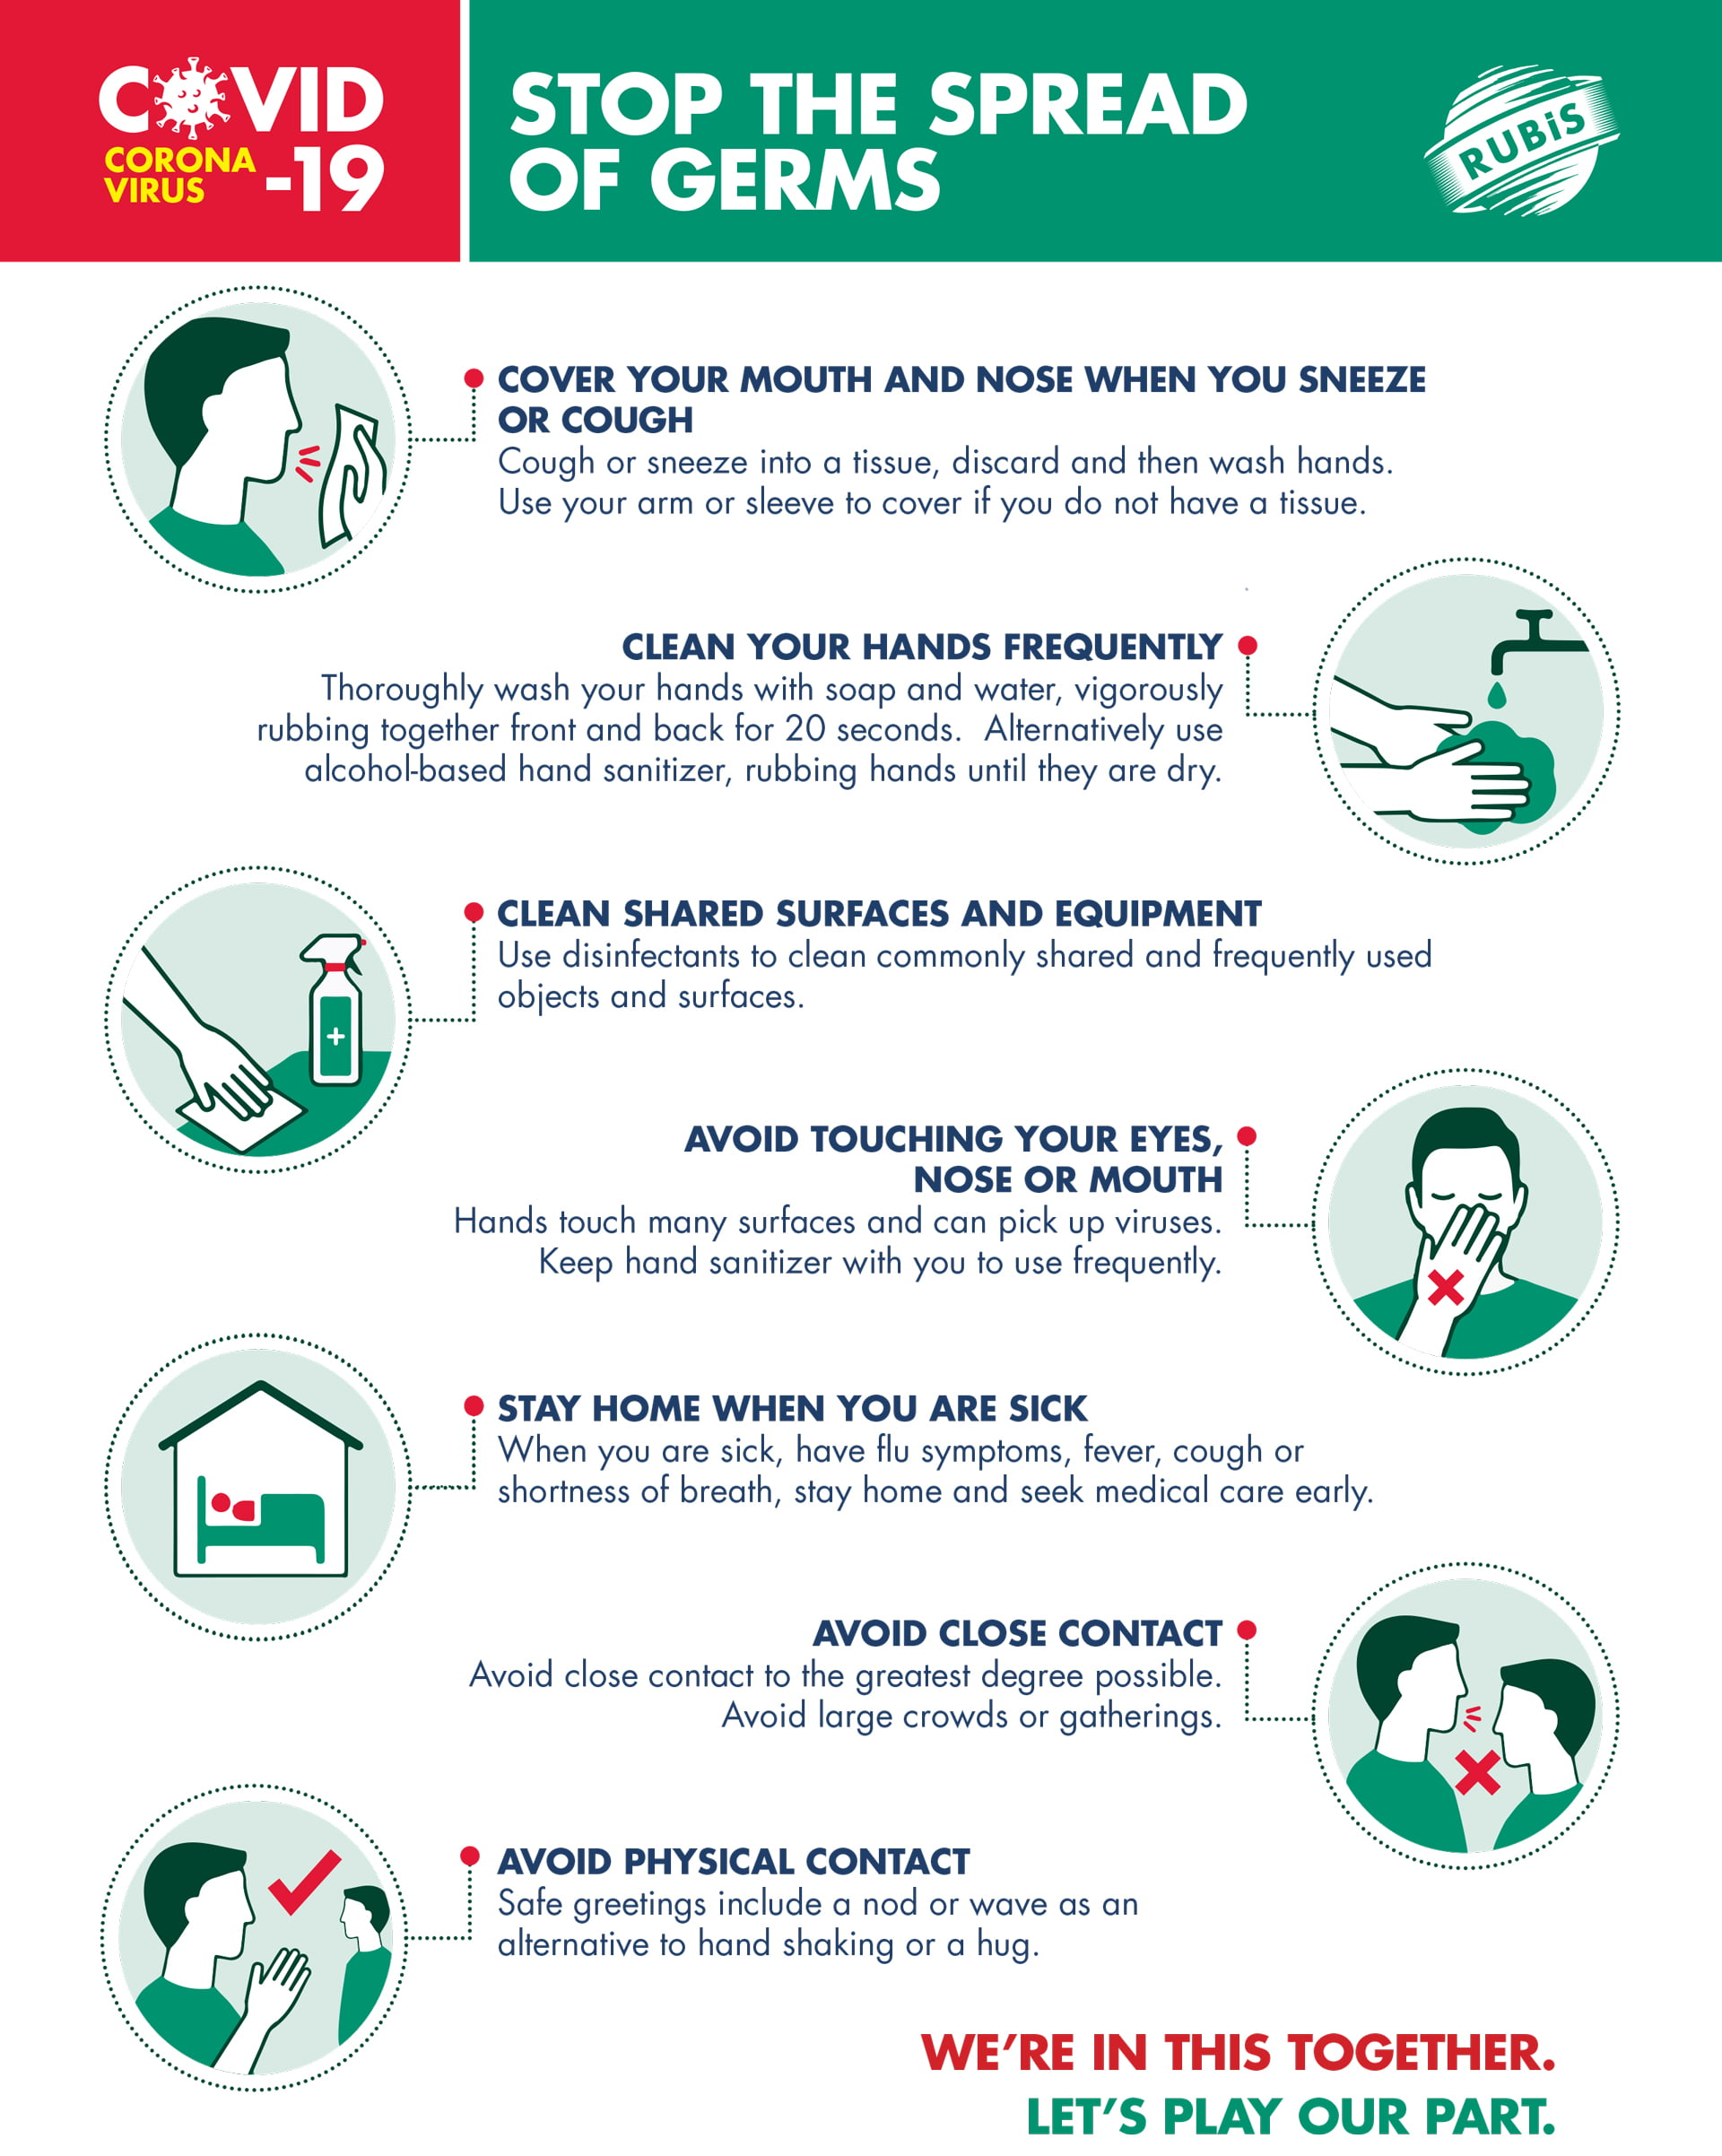 Tips to stop the spread of germs